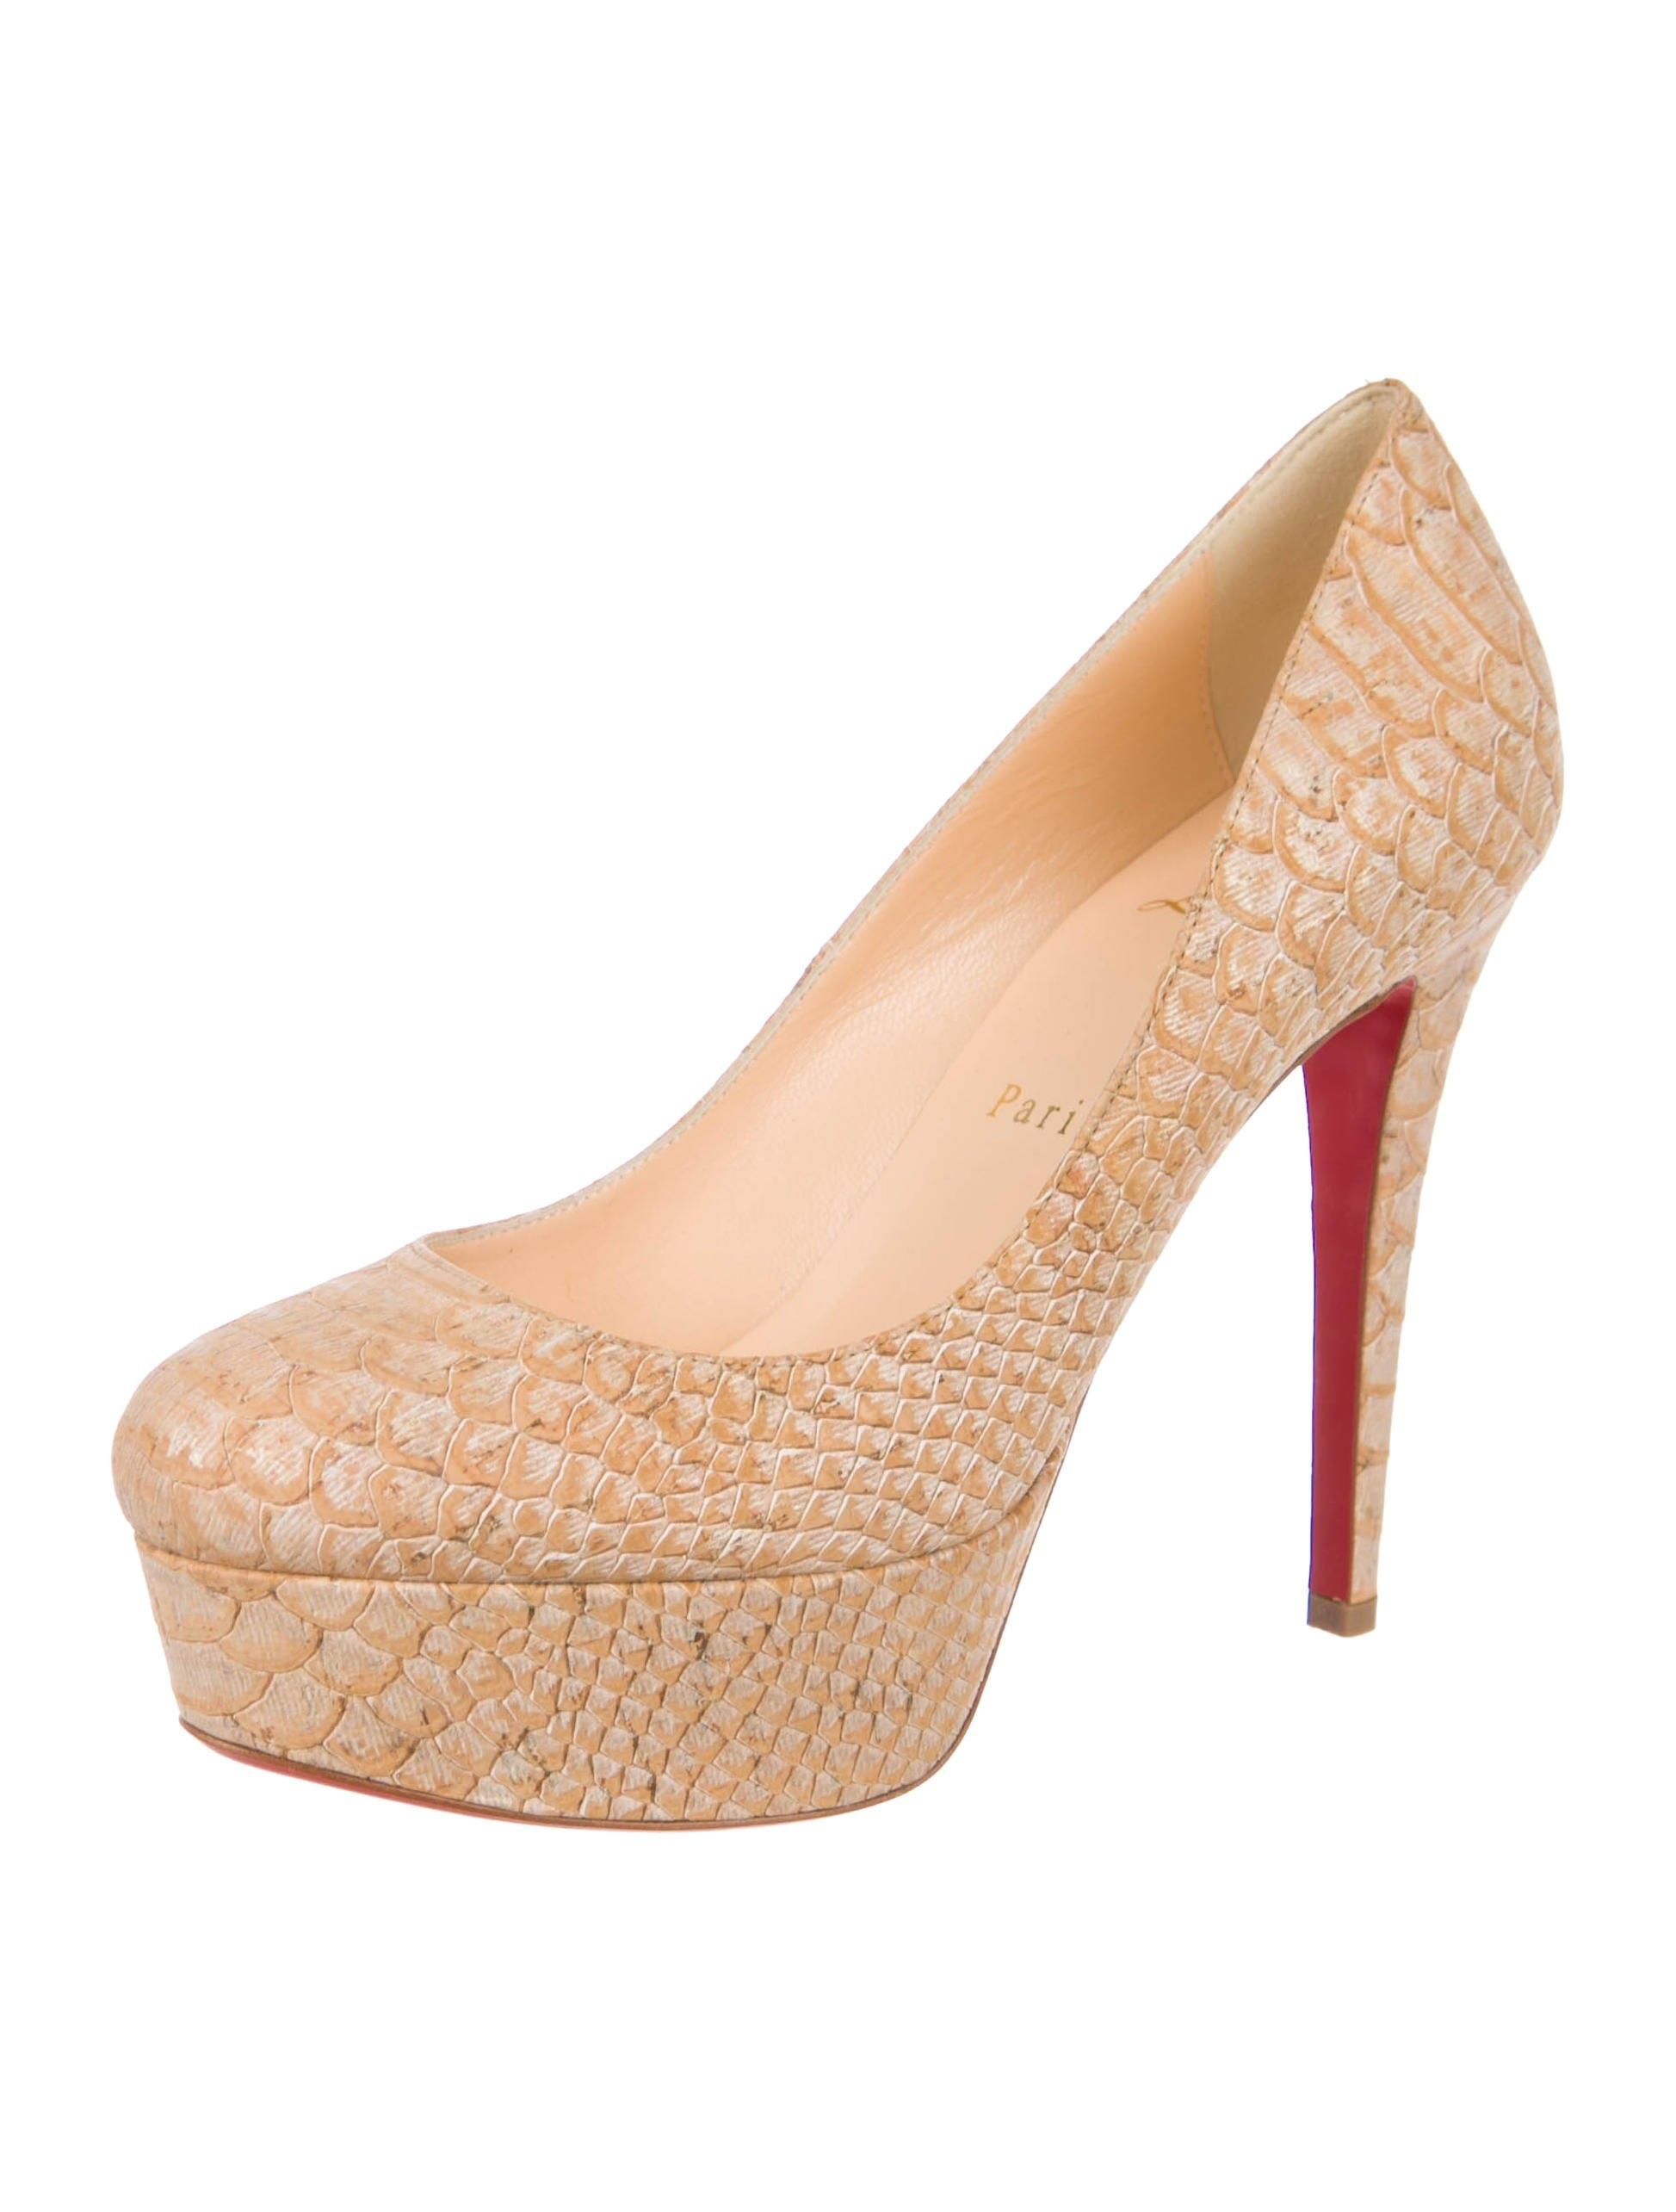 Christian Louboutin New Embossed Bianca 120 6 Pumps Size EU 36 (Approx. US 6) Regular (M, B)